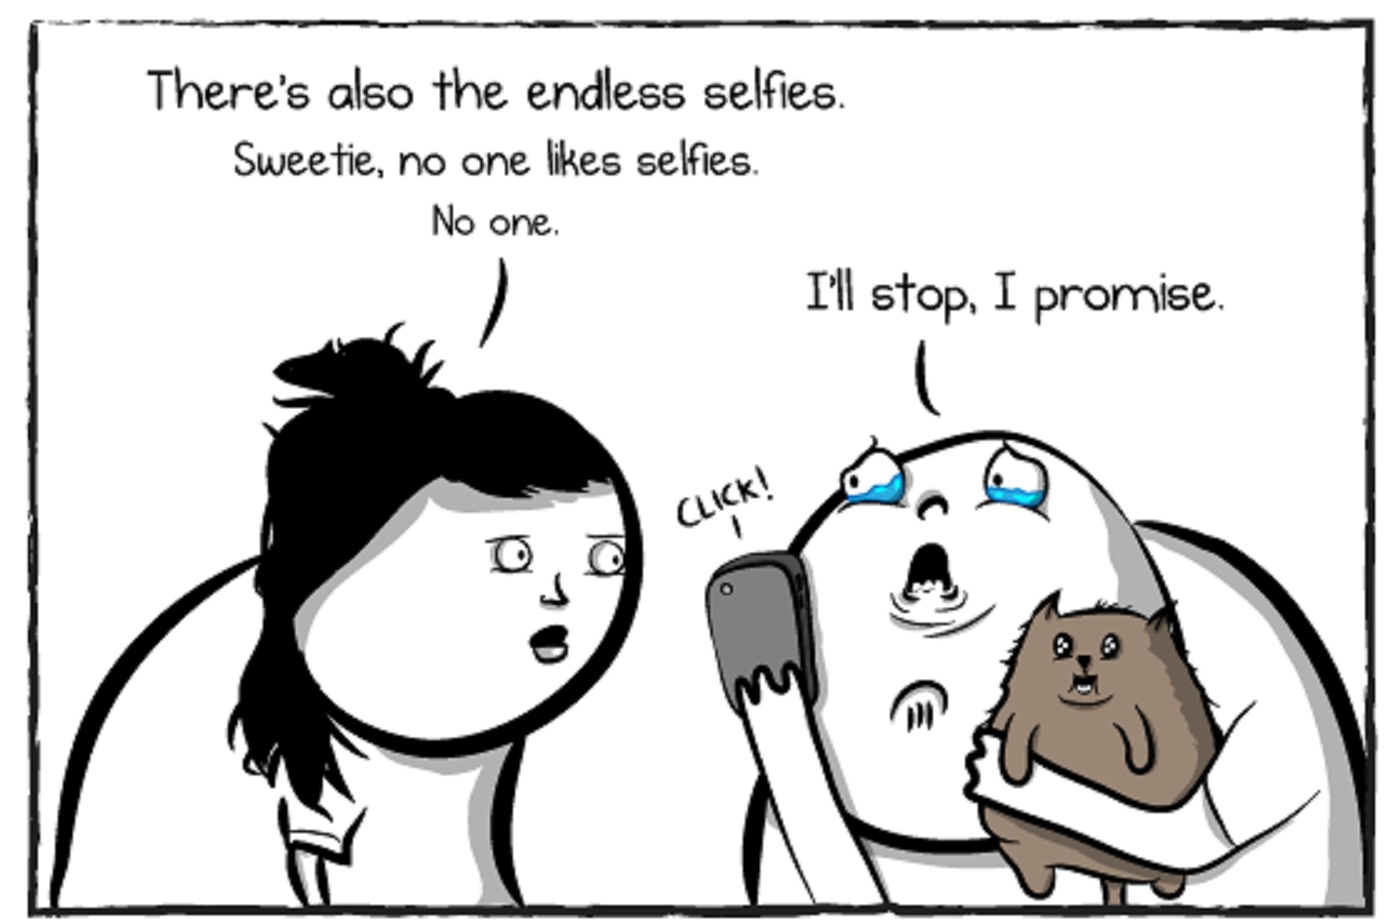 This awesomeness is from The Oatmeal, check out his website for the rest of the comic!